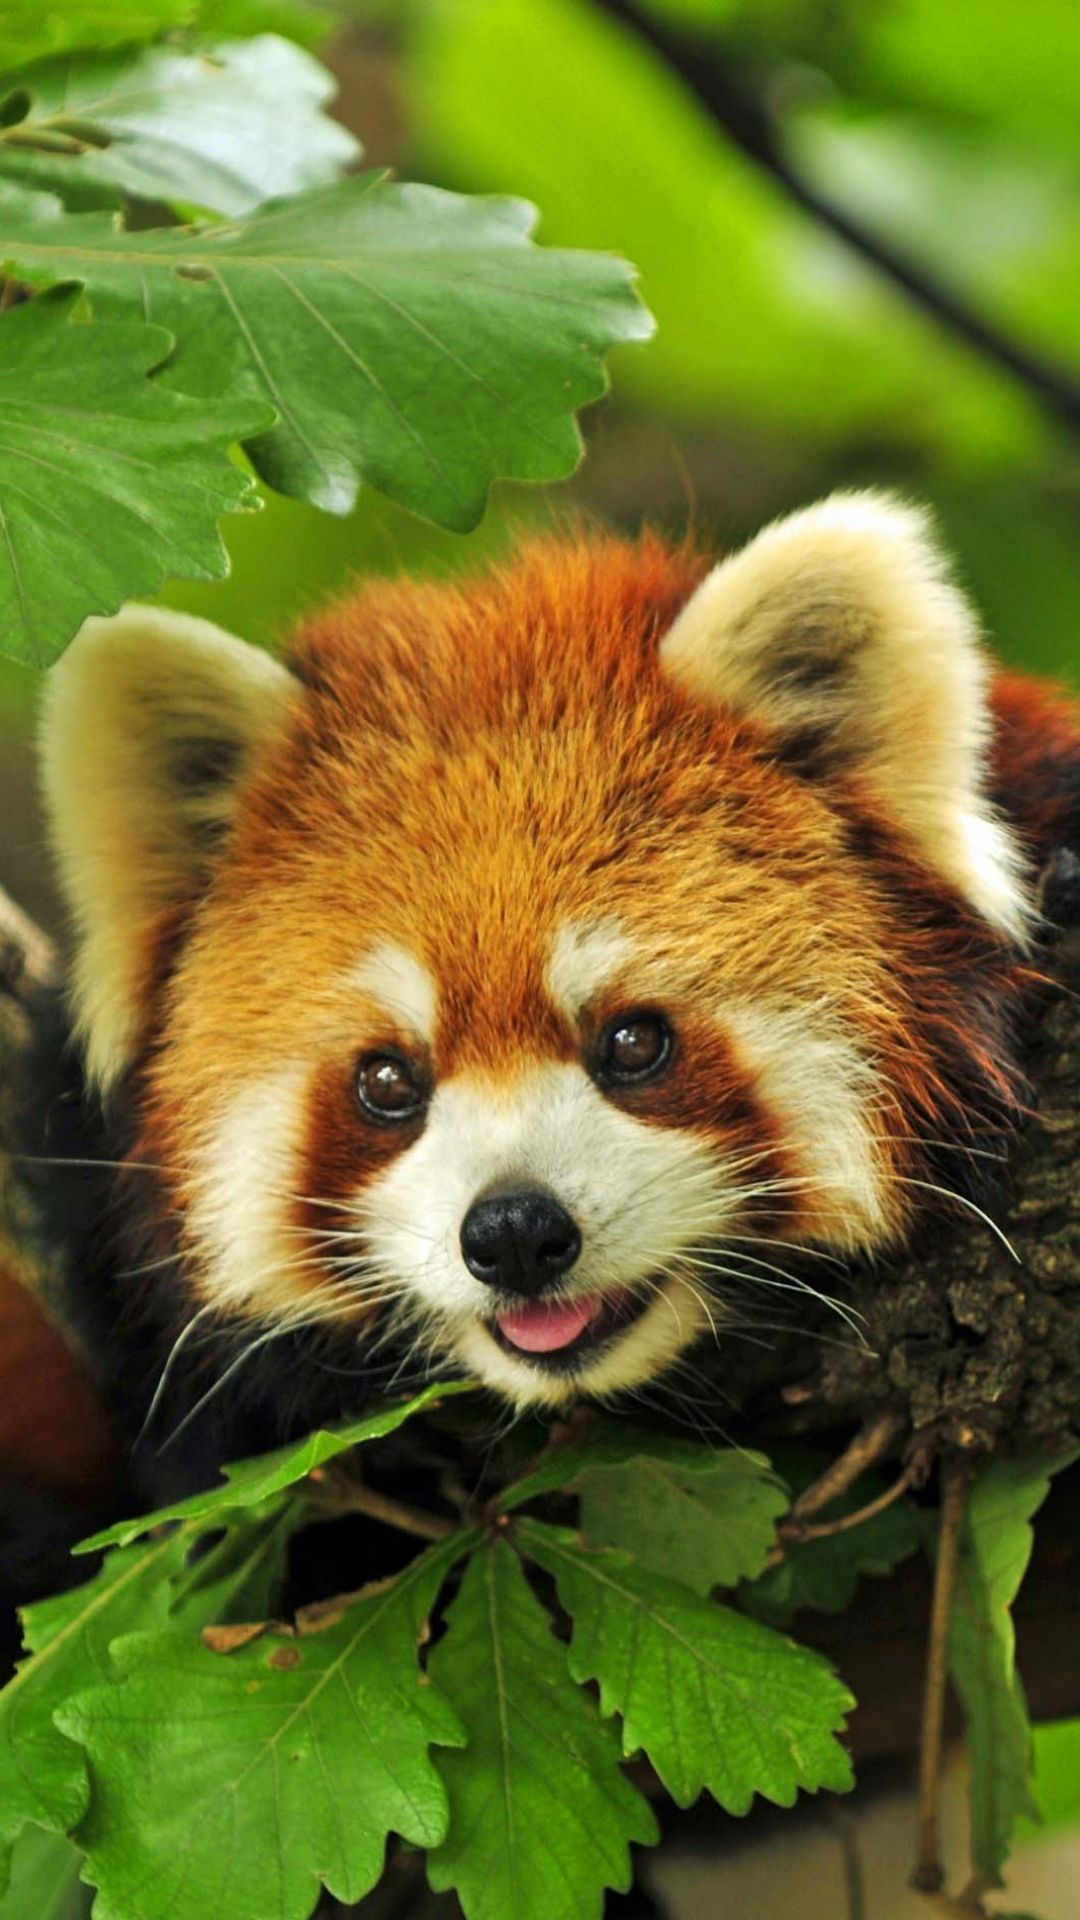 Red Panda Grass Leaves Branches Adorable Krasnye Pandy Foto Zhivotnyh Domashnie Pticy